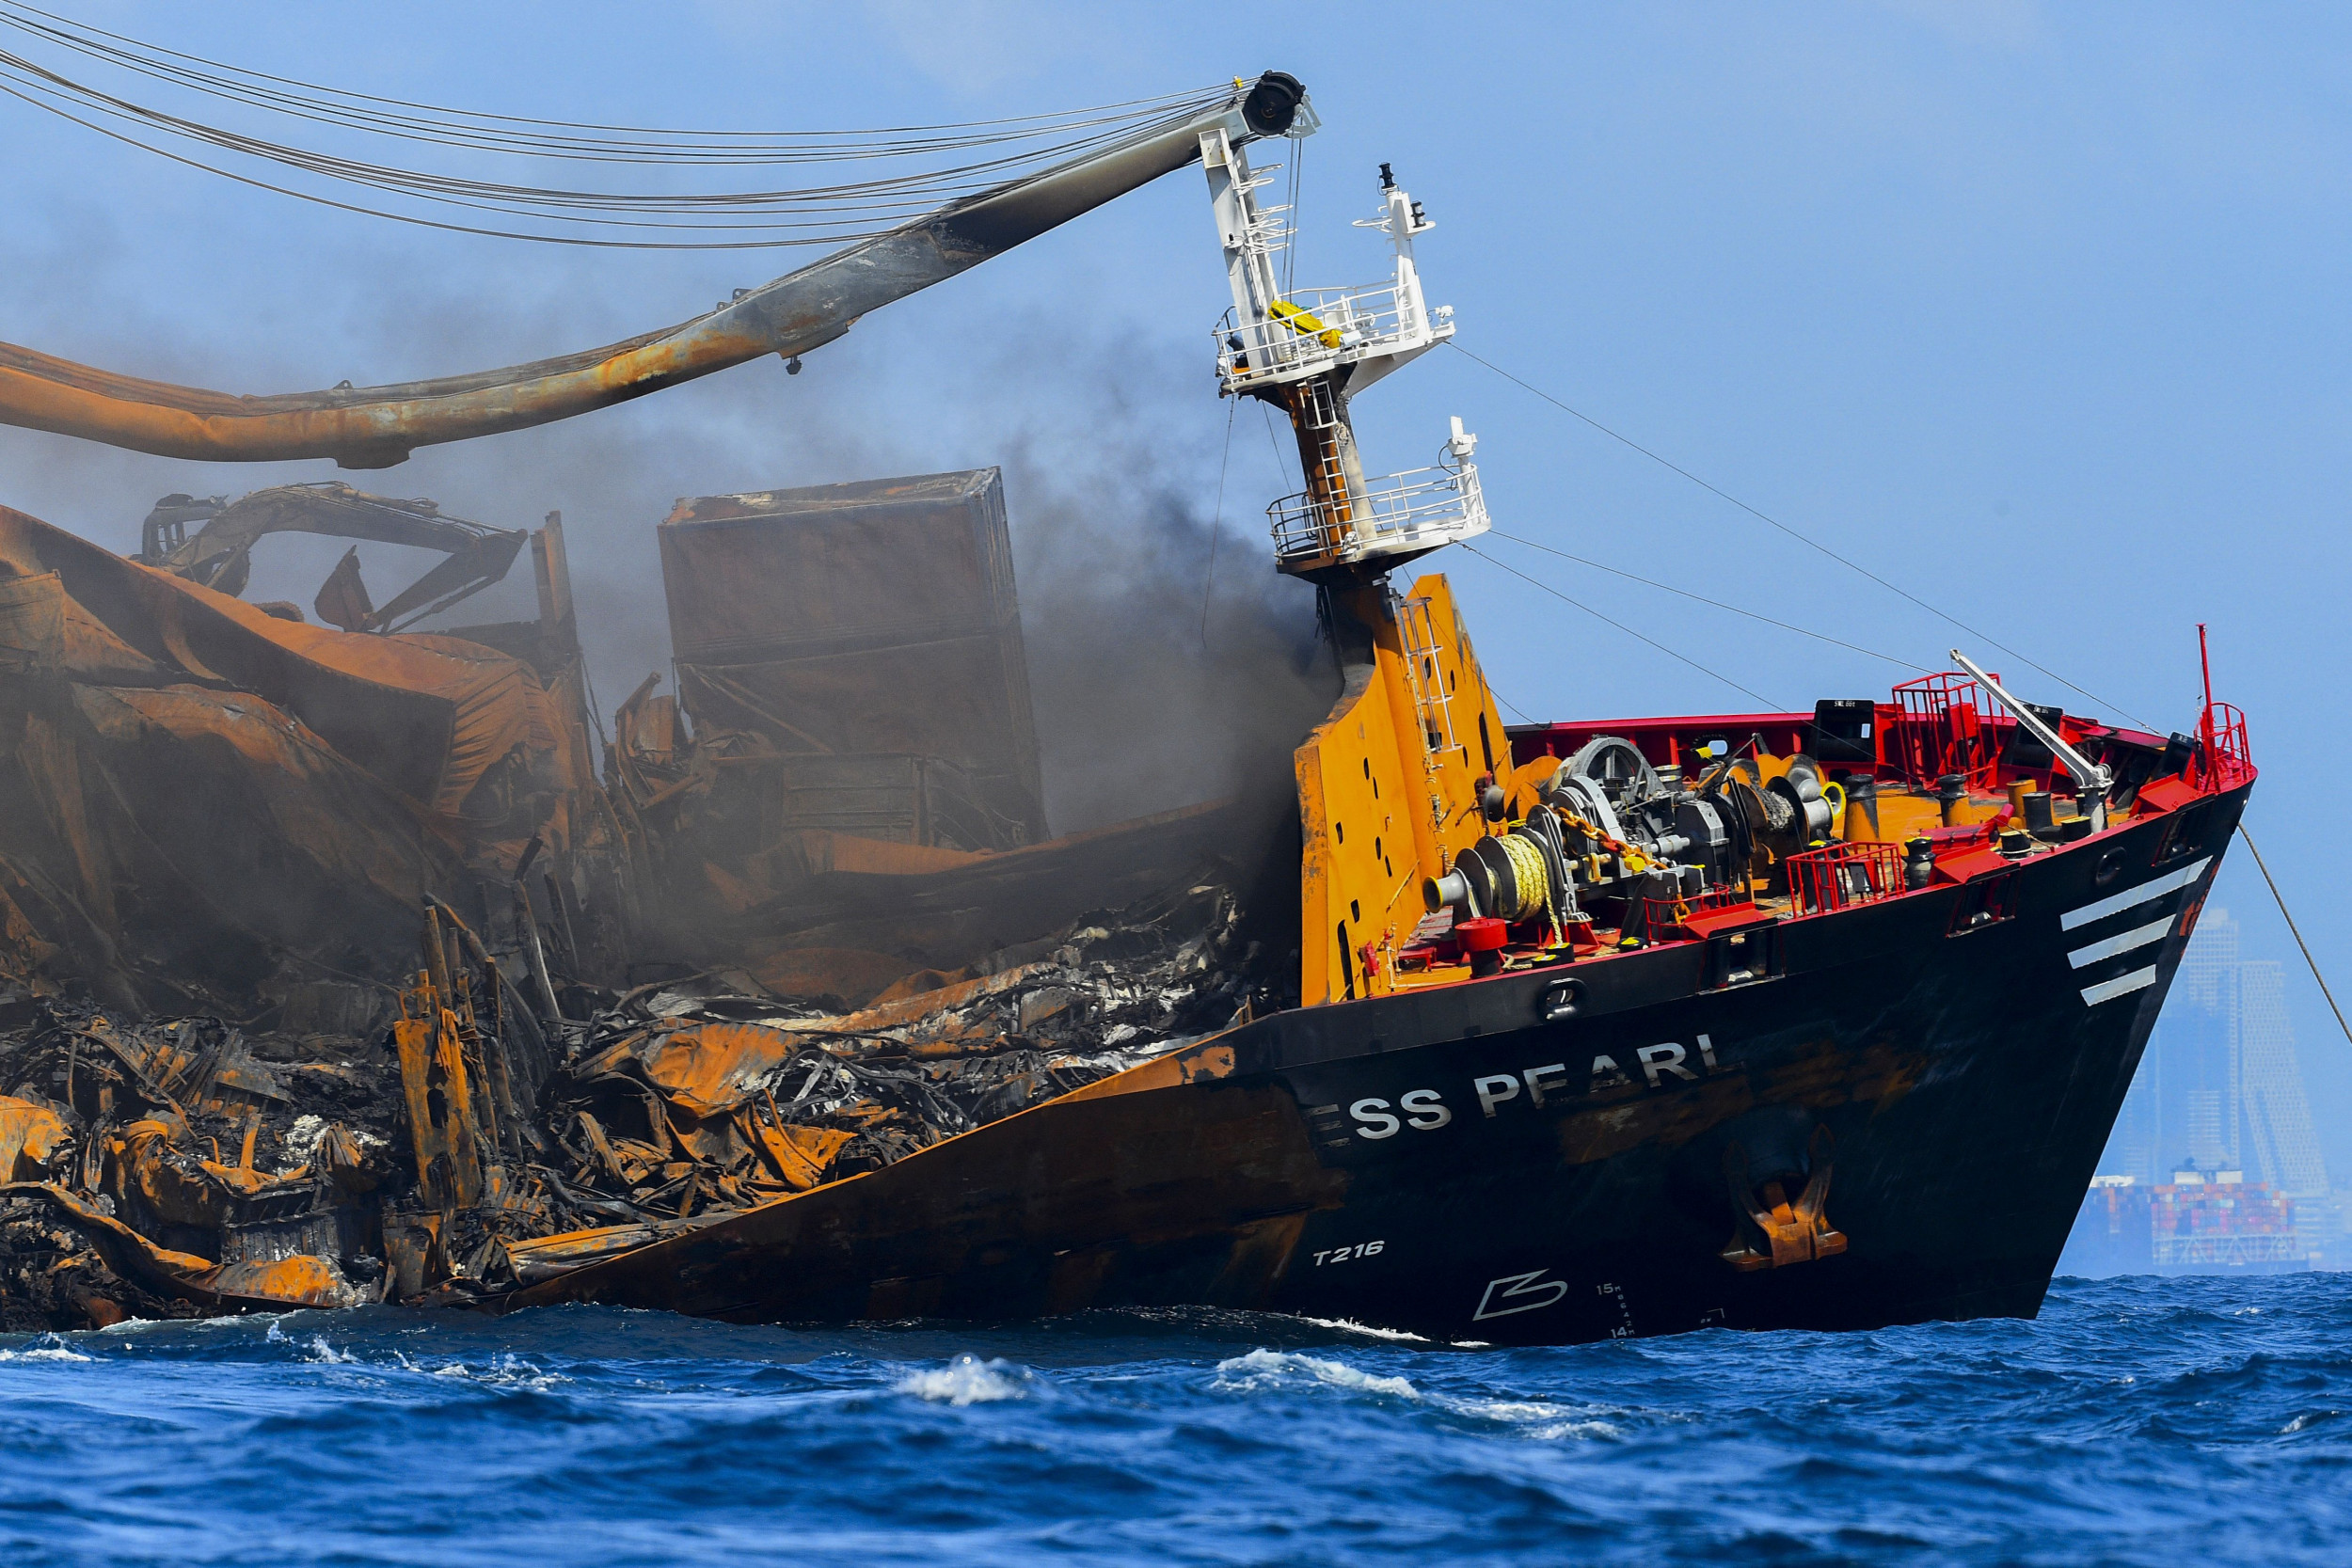 Sri Lanka Prosecutors Probing Deleted Emails From Captain of Ship That Sank With 25 Tons of Acid